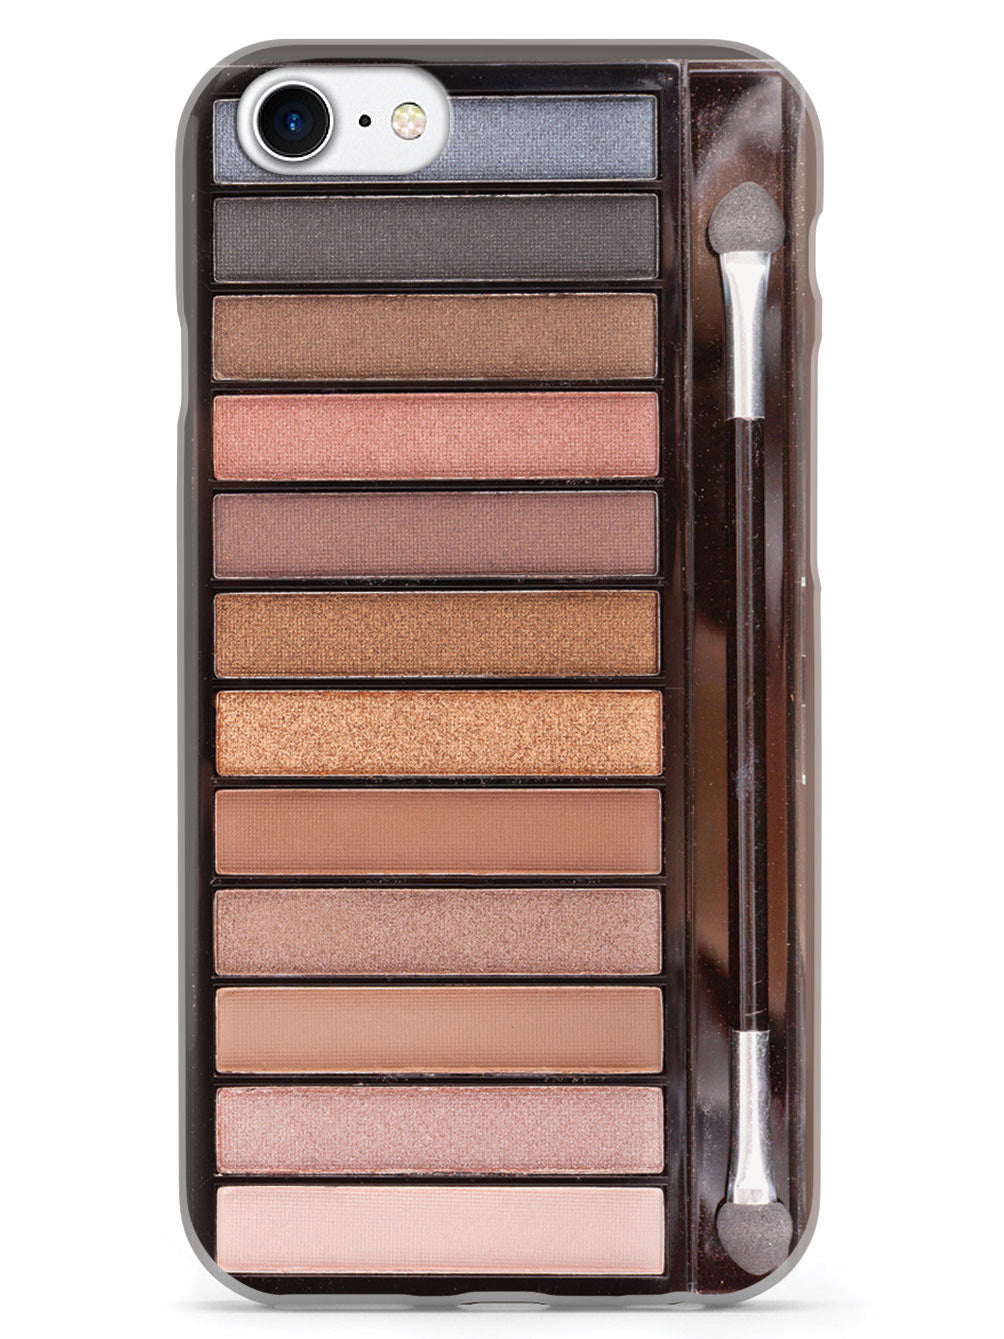 Eyeshadow Palette Case